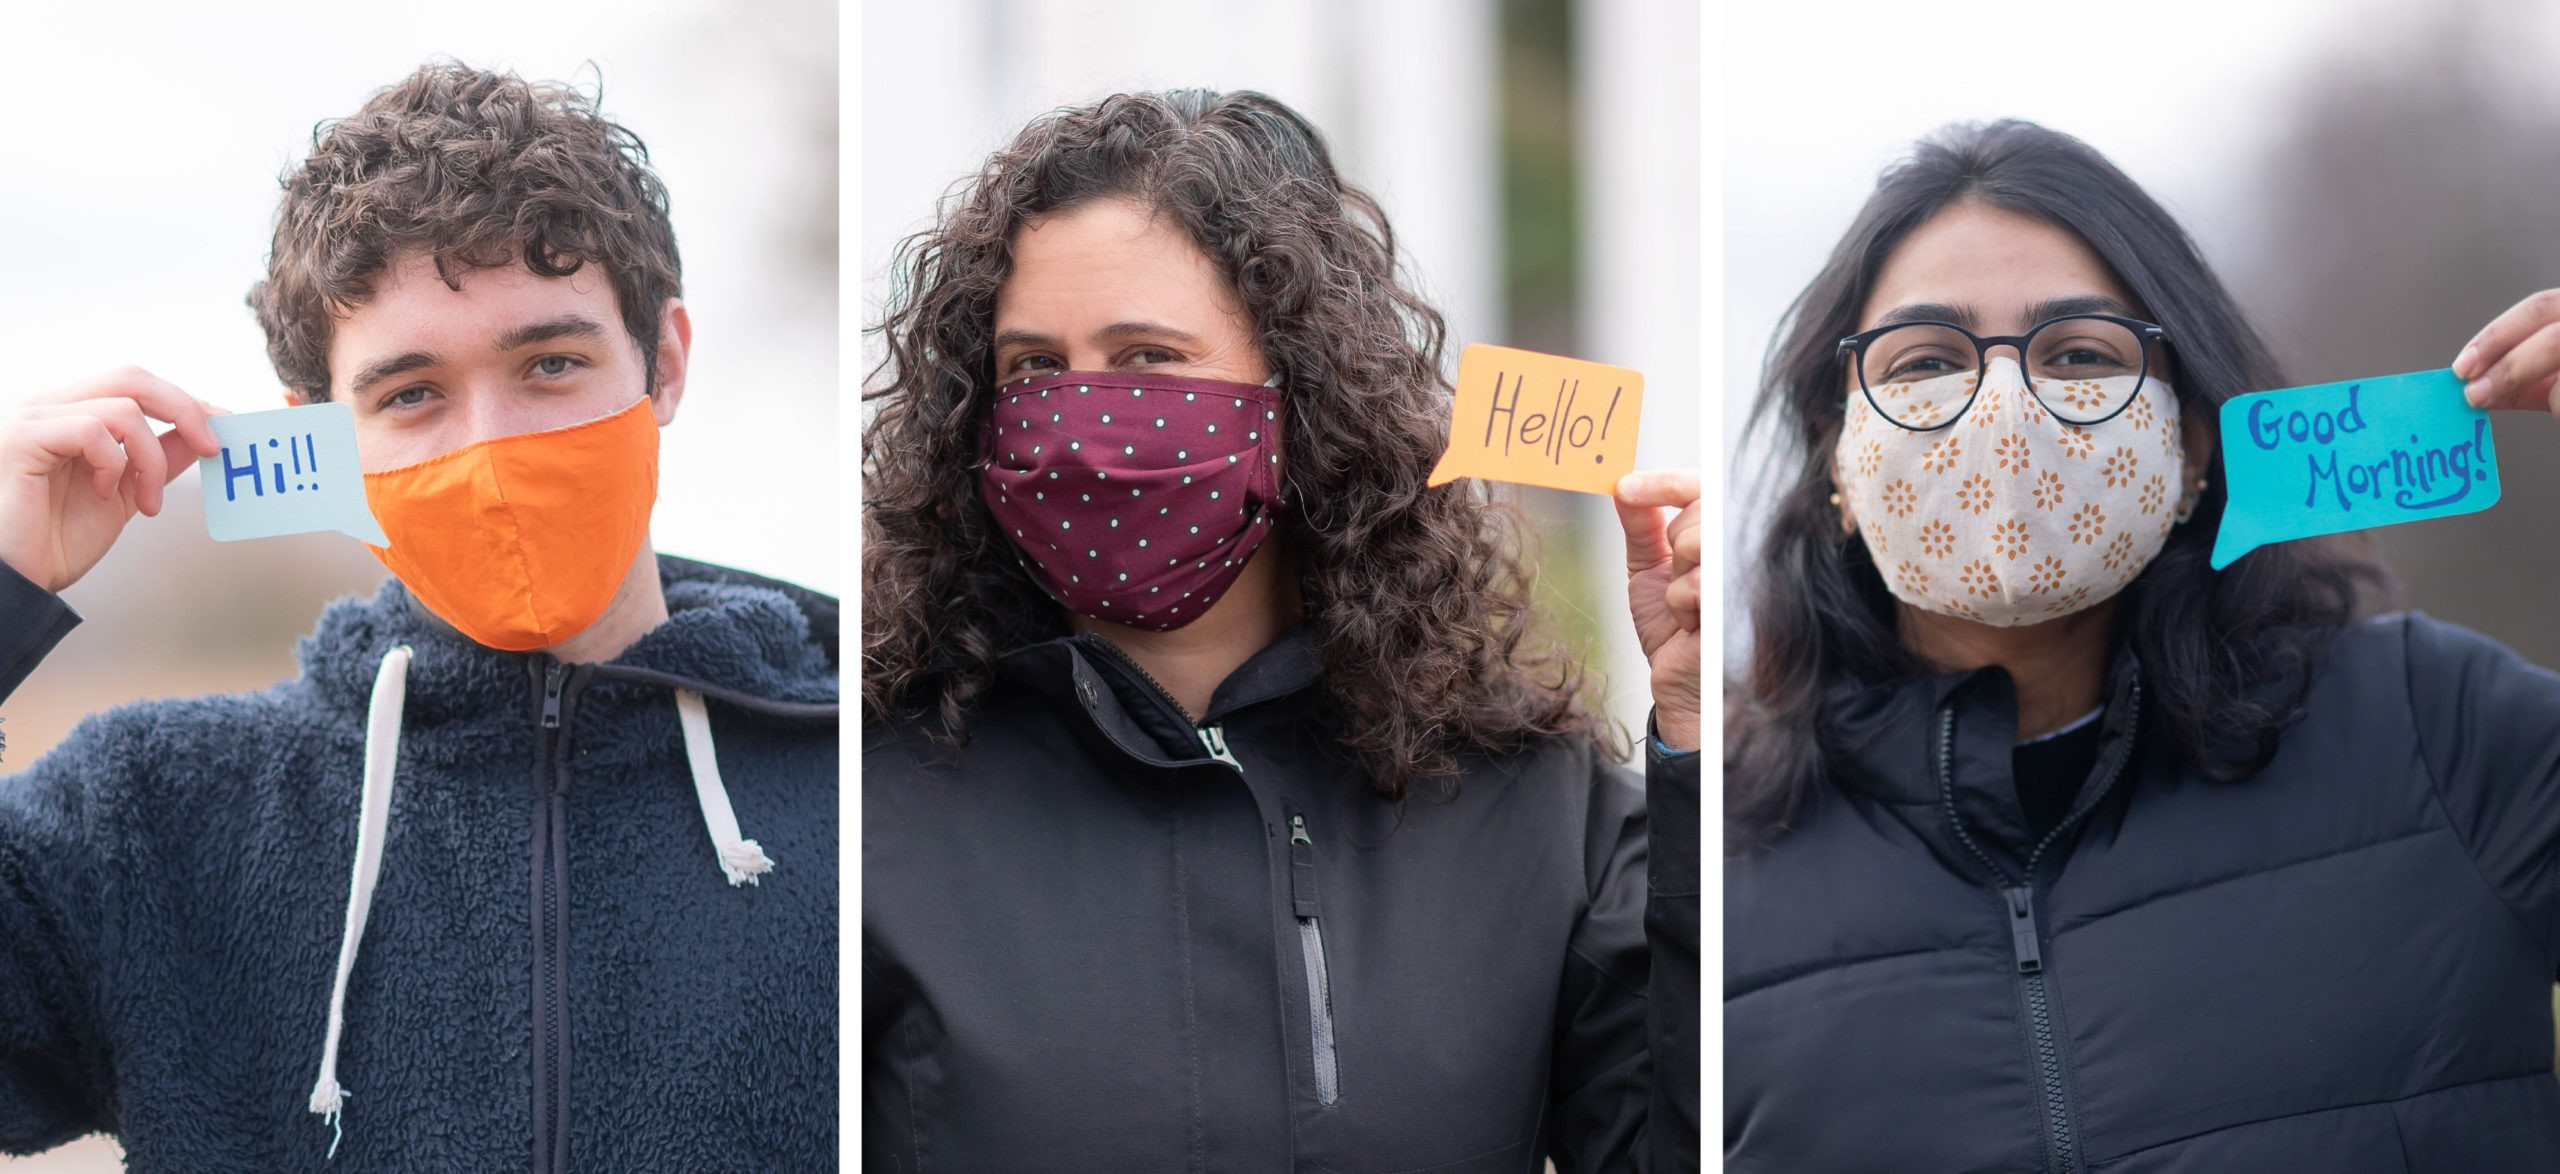 Three people wearing COVID-19 face masks say hello using signs